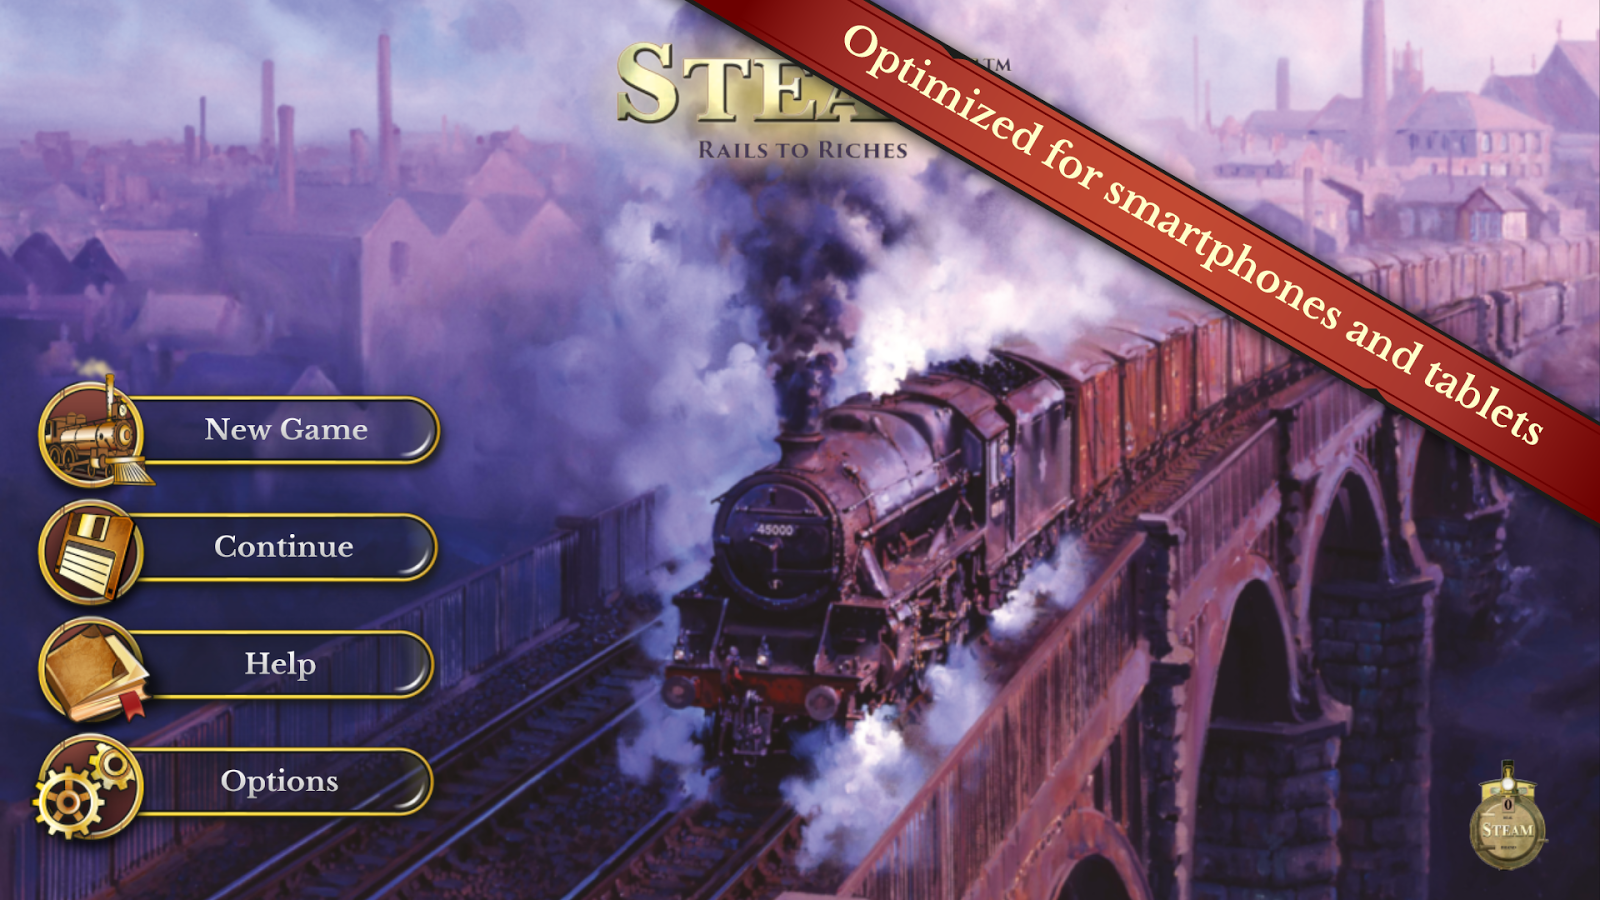 Steam: Rails to Riches Screenshot 12